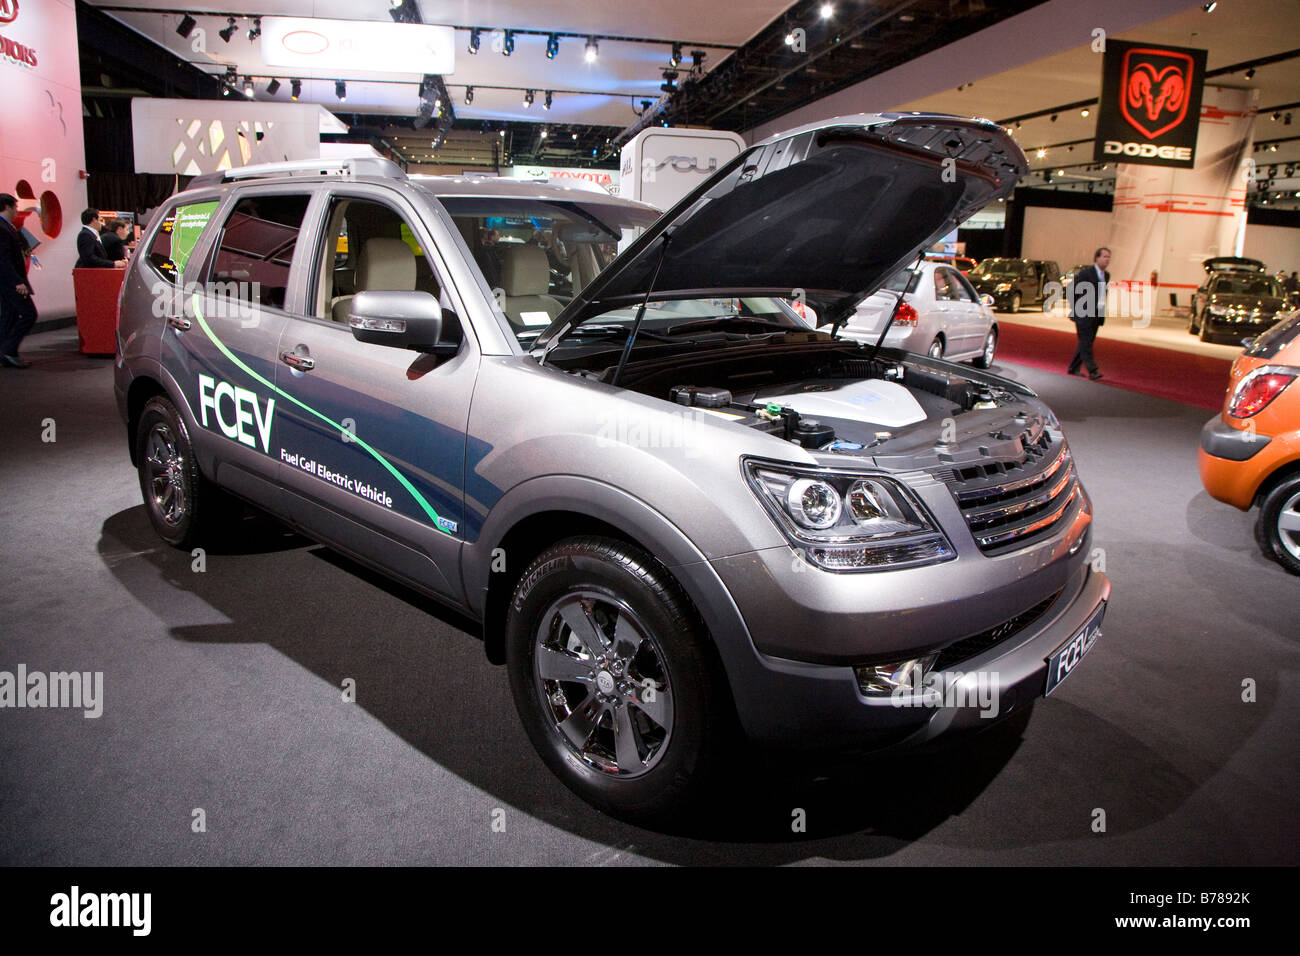 Kia FCEV Stock Photo